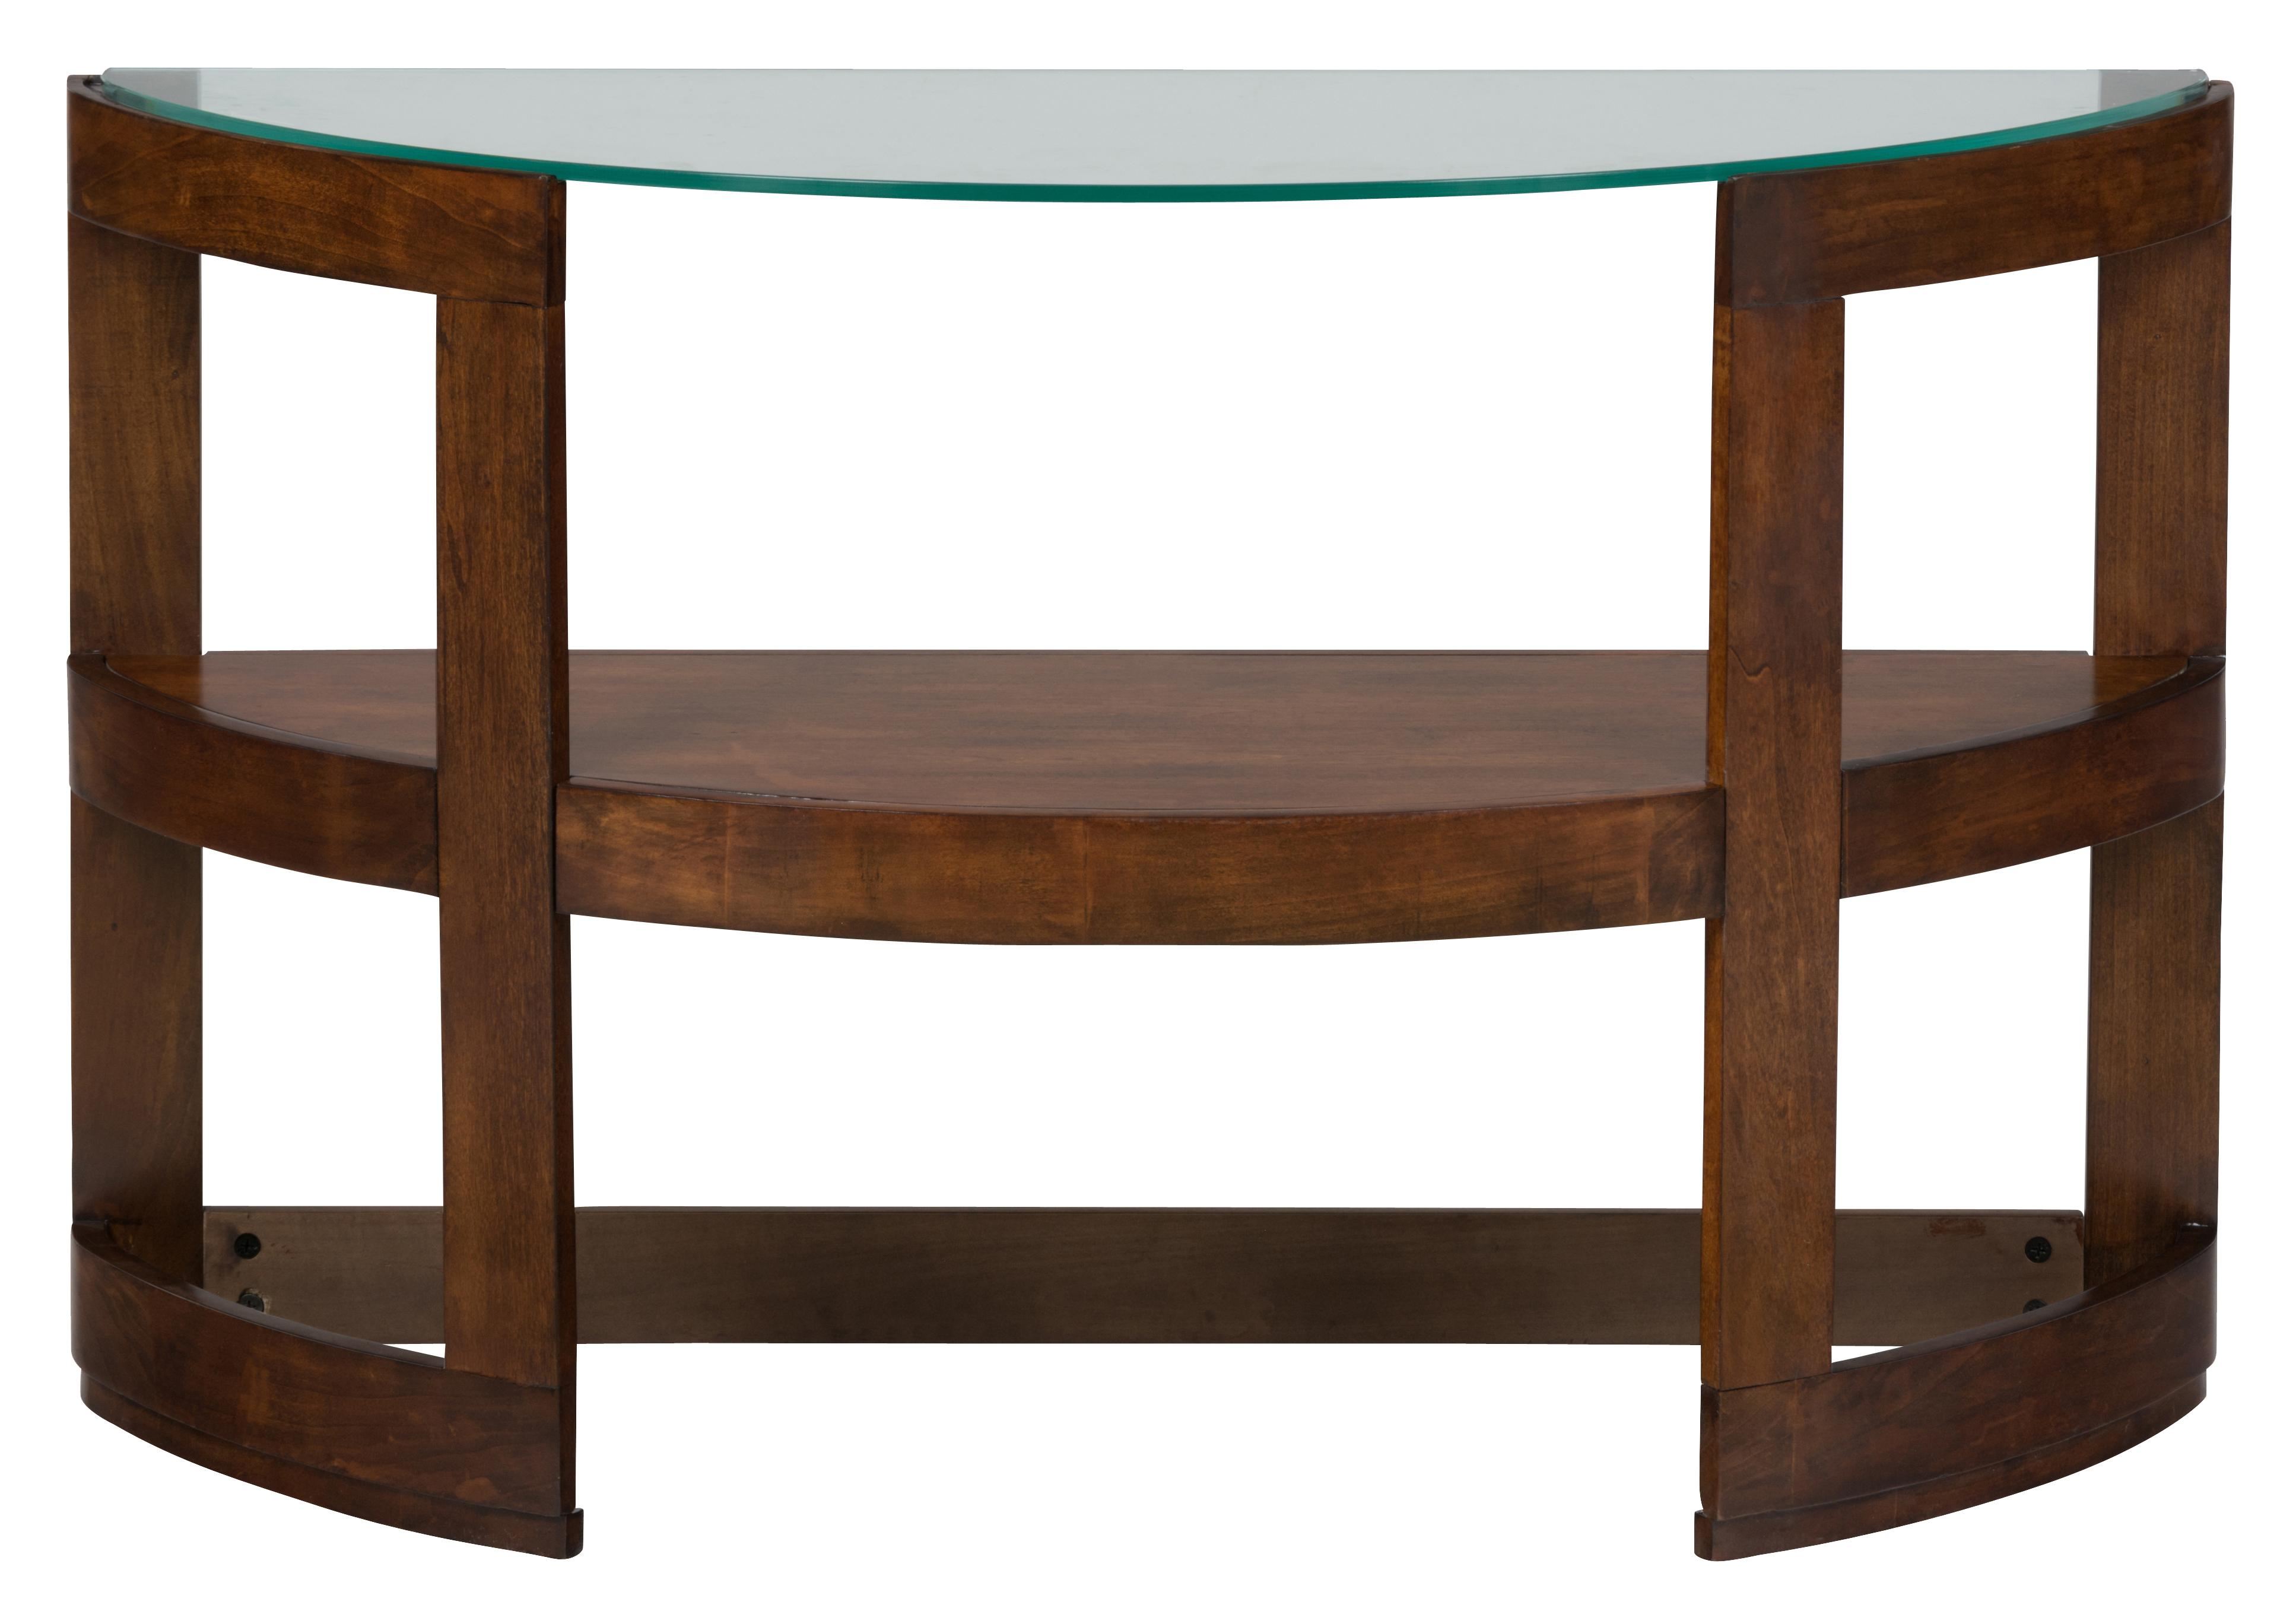 Jofran Avon Birch Demi-Lune Sofa Table with Glass Top - Item Number: 348-4